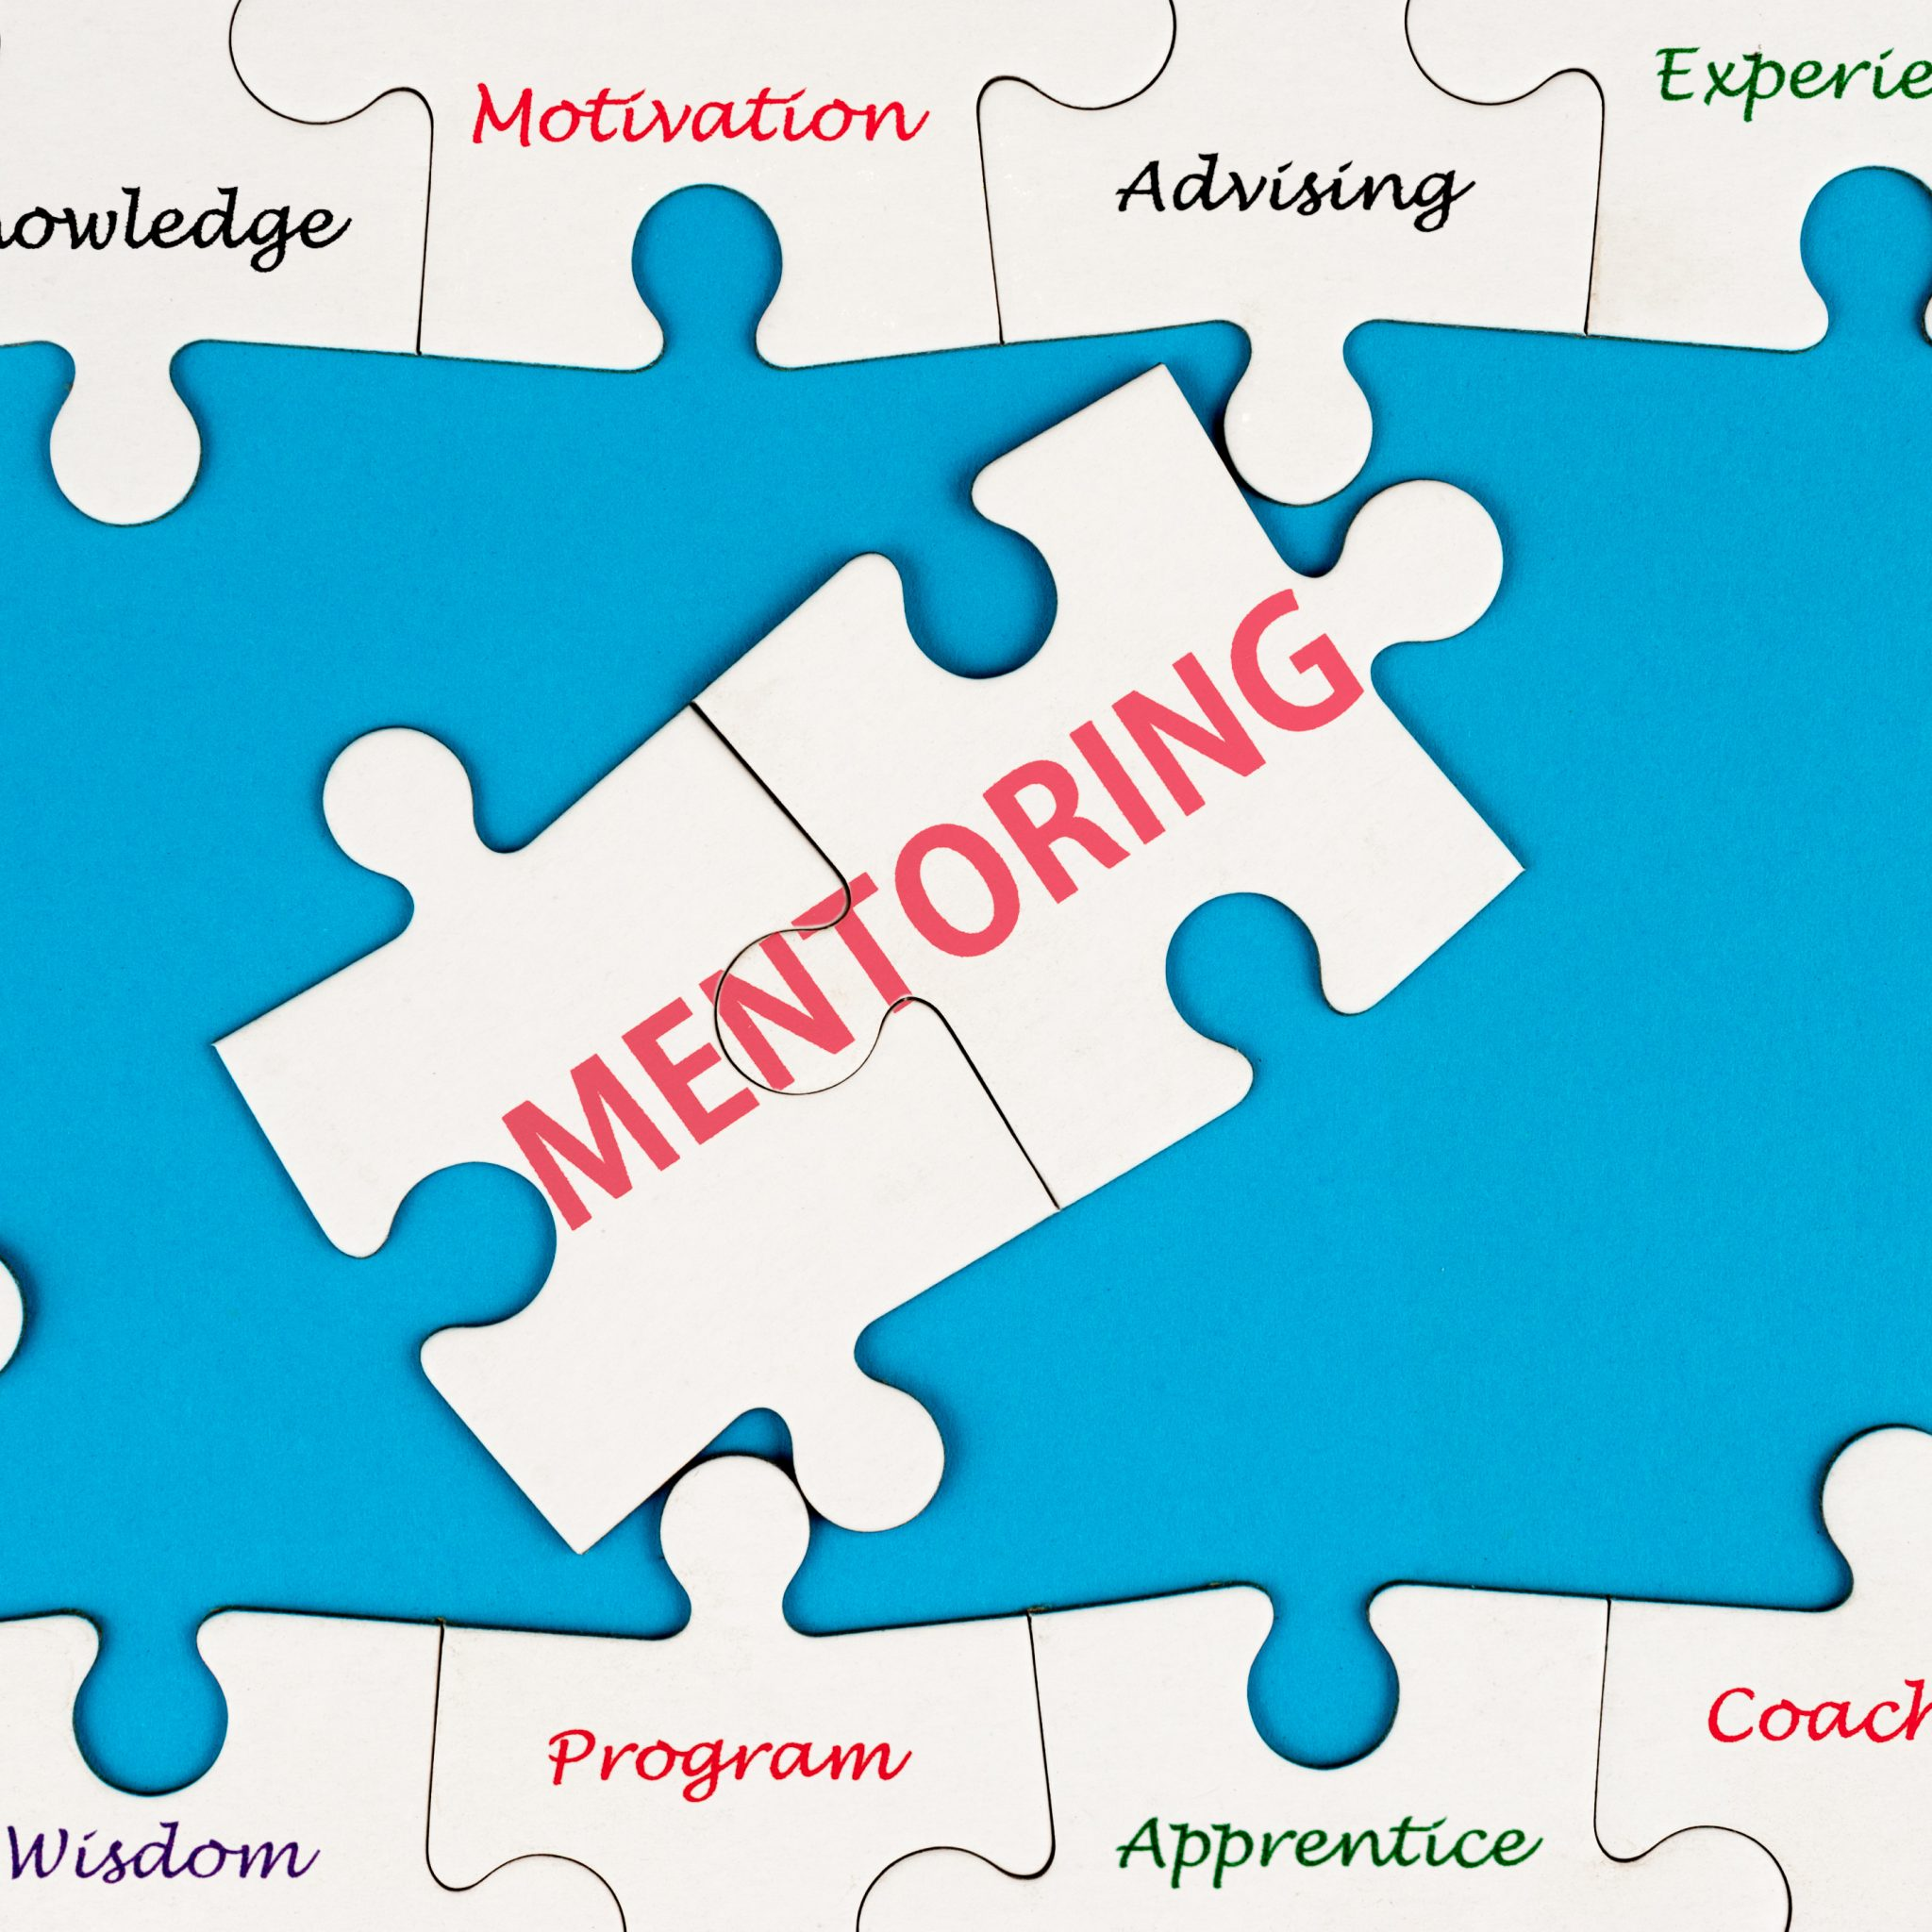 8 qualities of a great Mentor